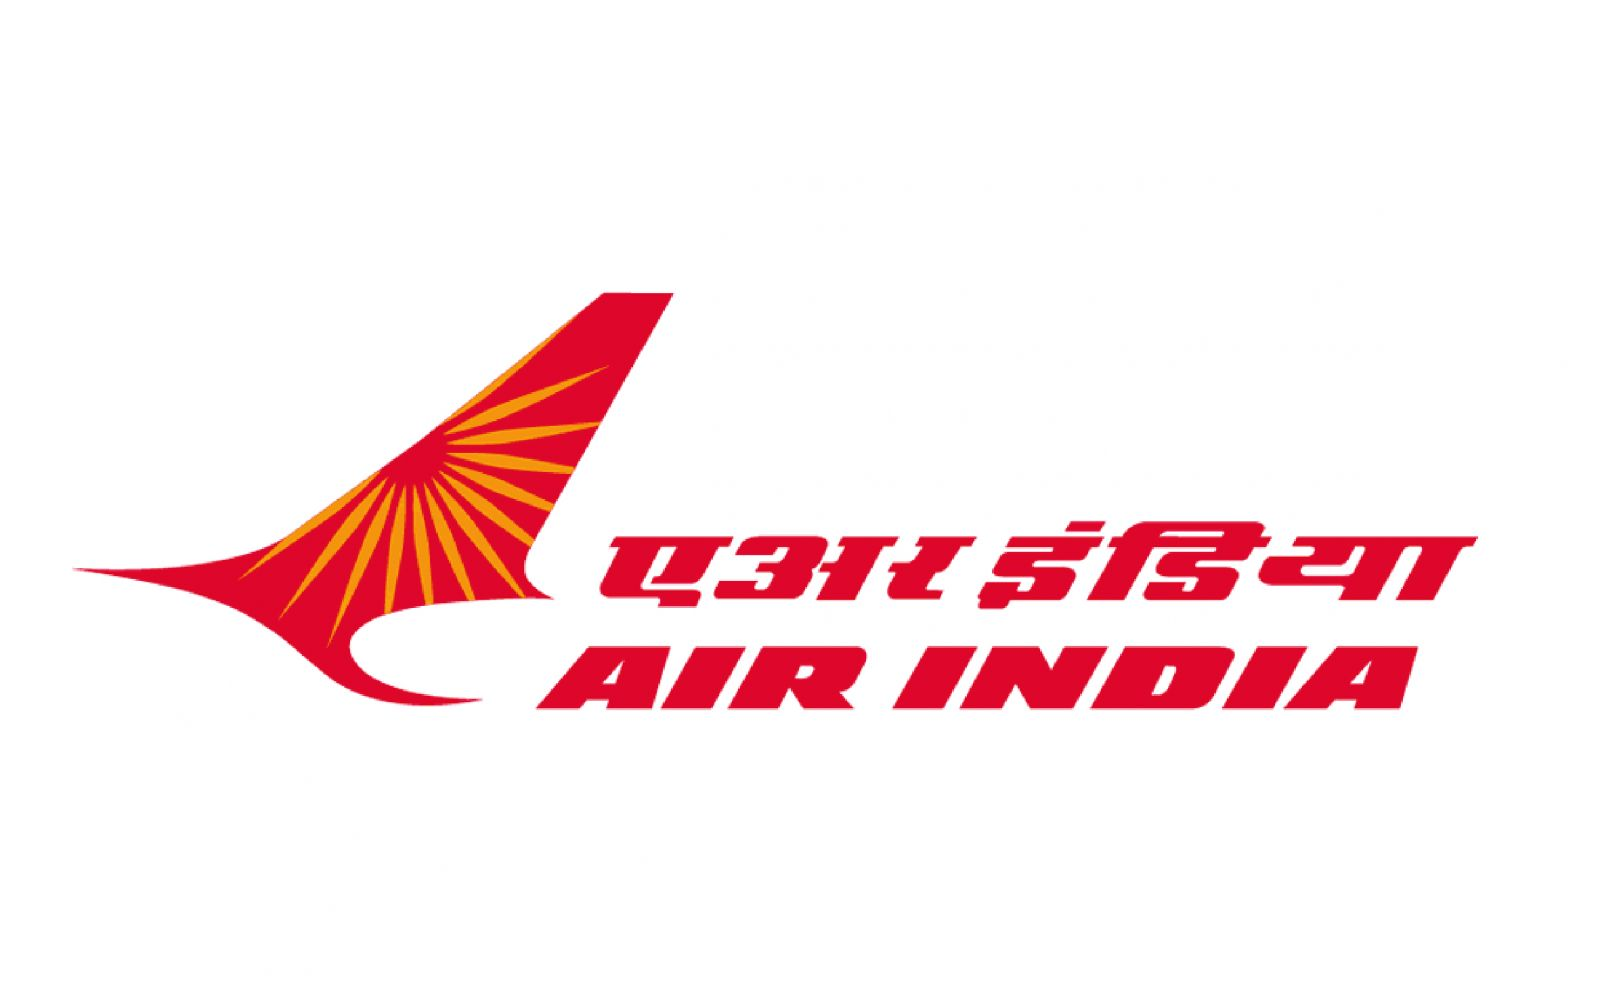 ICTS supports Ad-Hoc request from Air India at Glasgow Airport